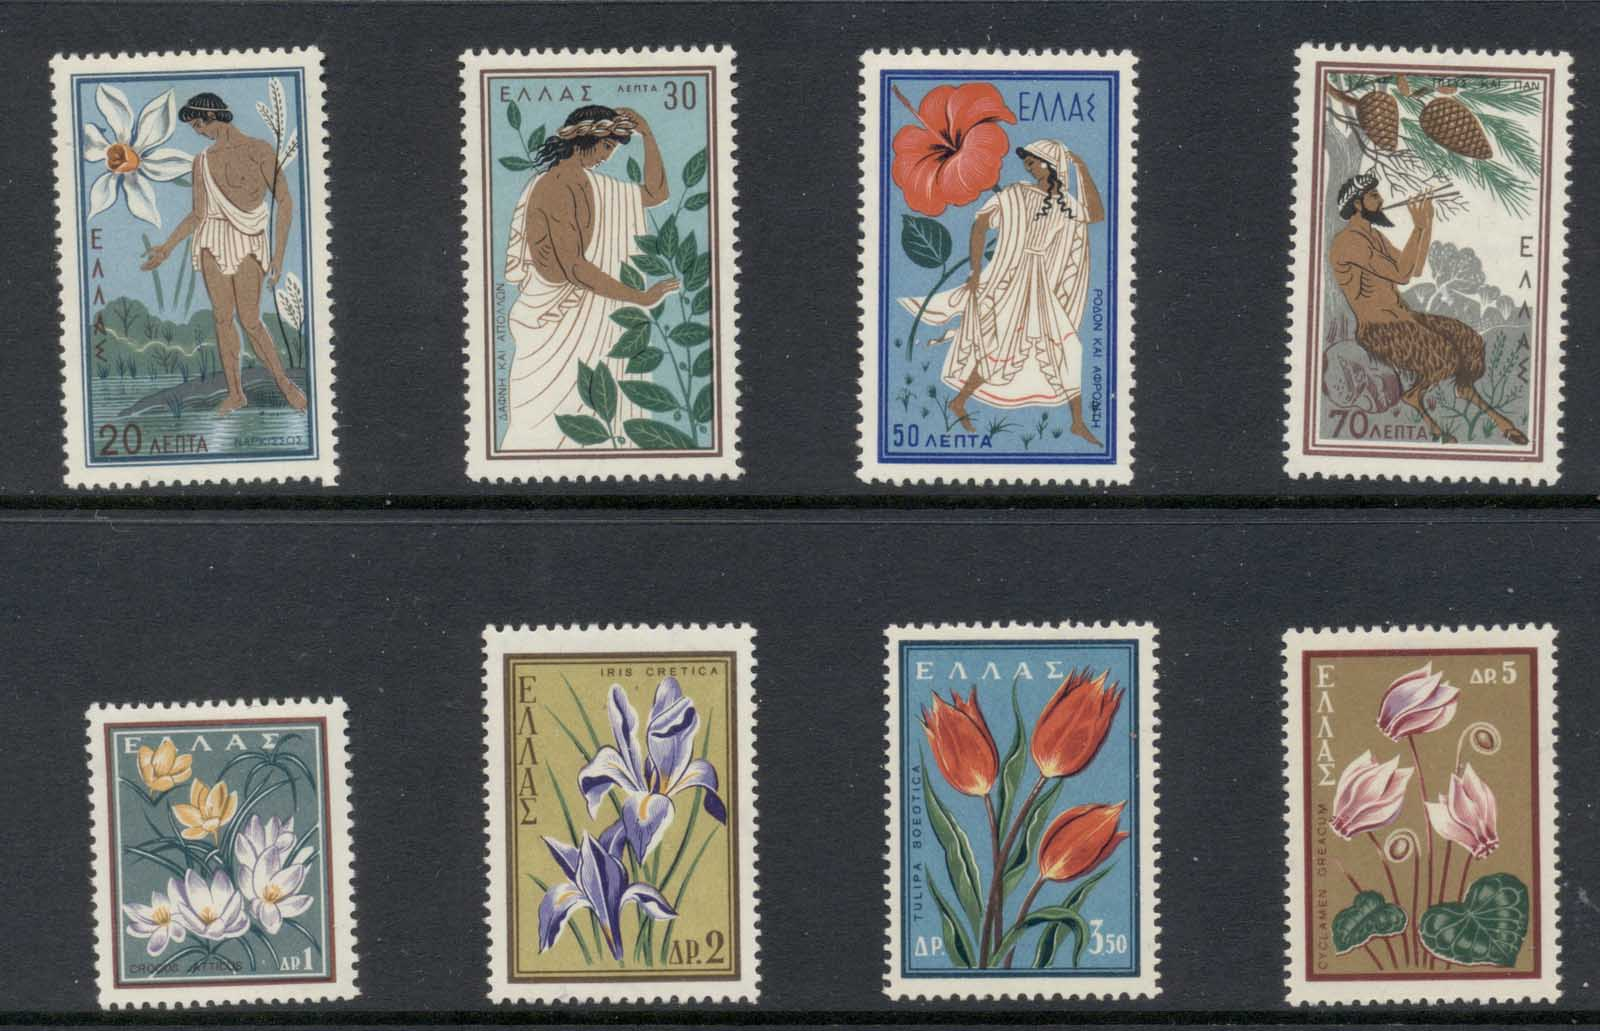 Greece 1958 Protection of Nature Congress MLH